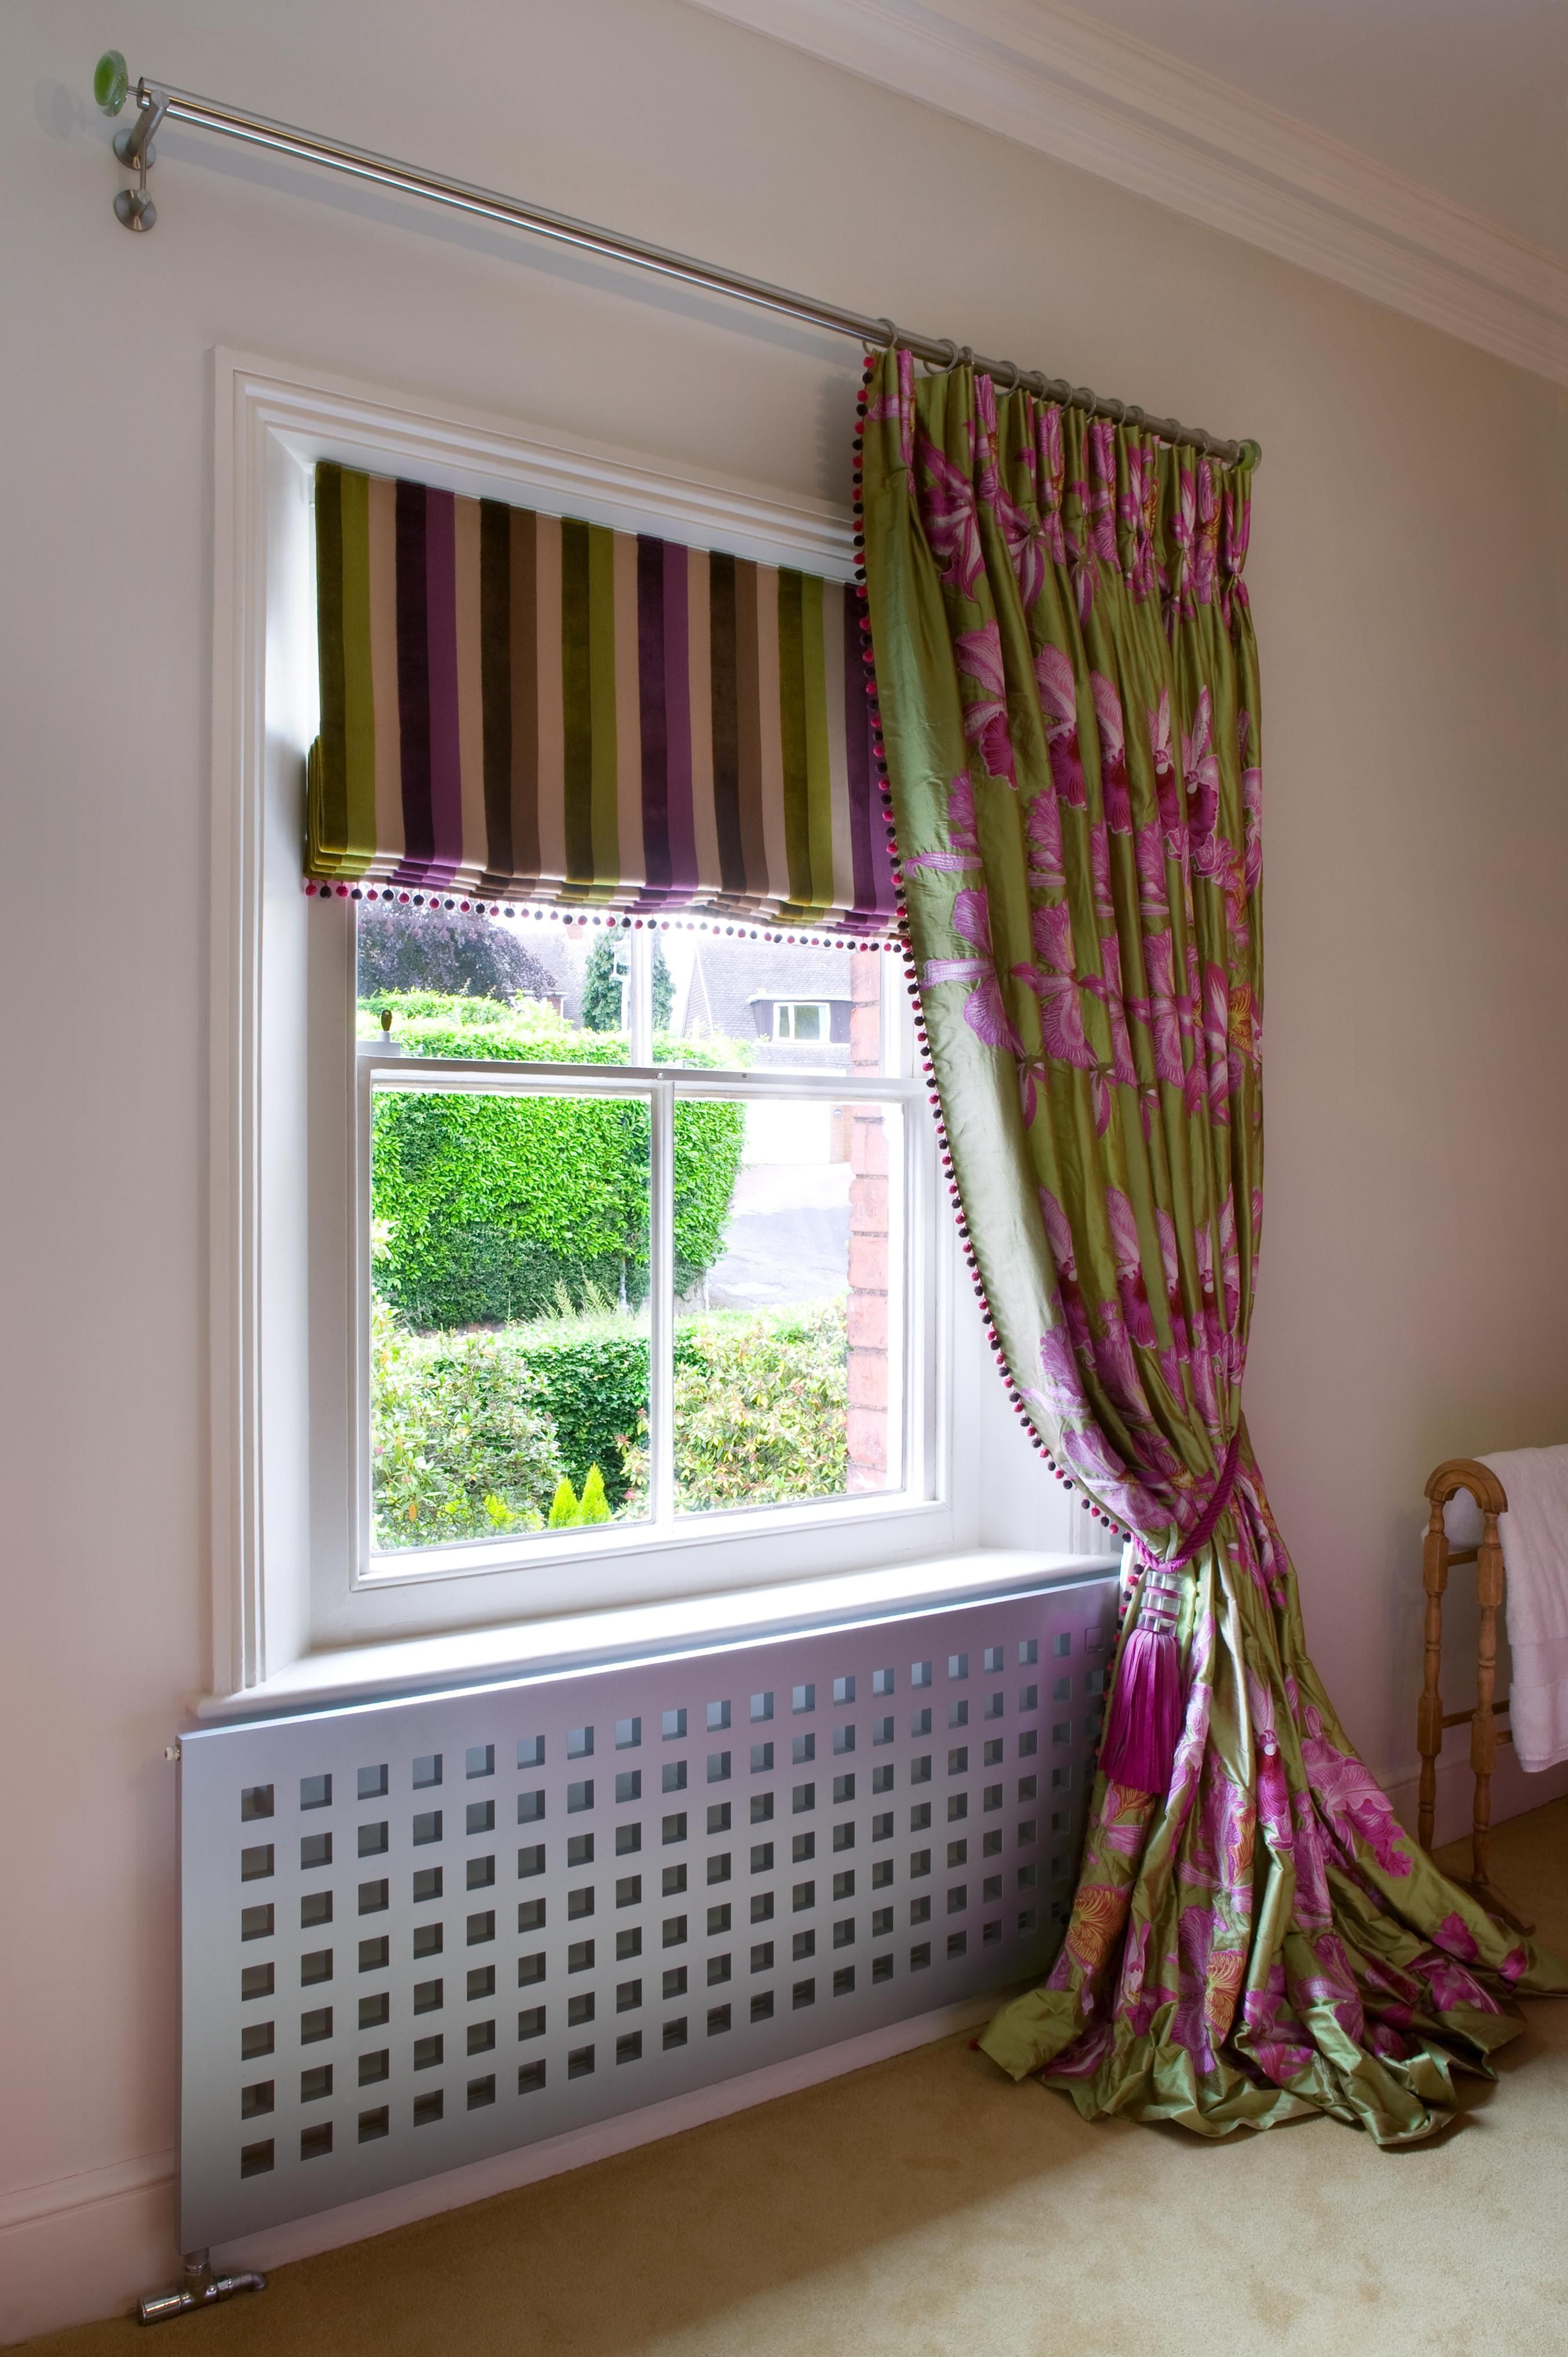 Latest window coverings 2018   cheap and easy tips sheer blinds valances privacy blinds natural